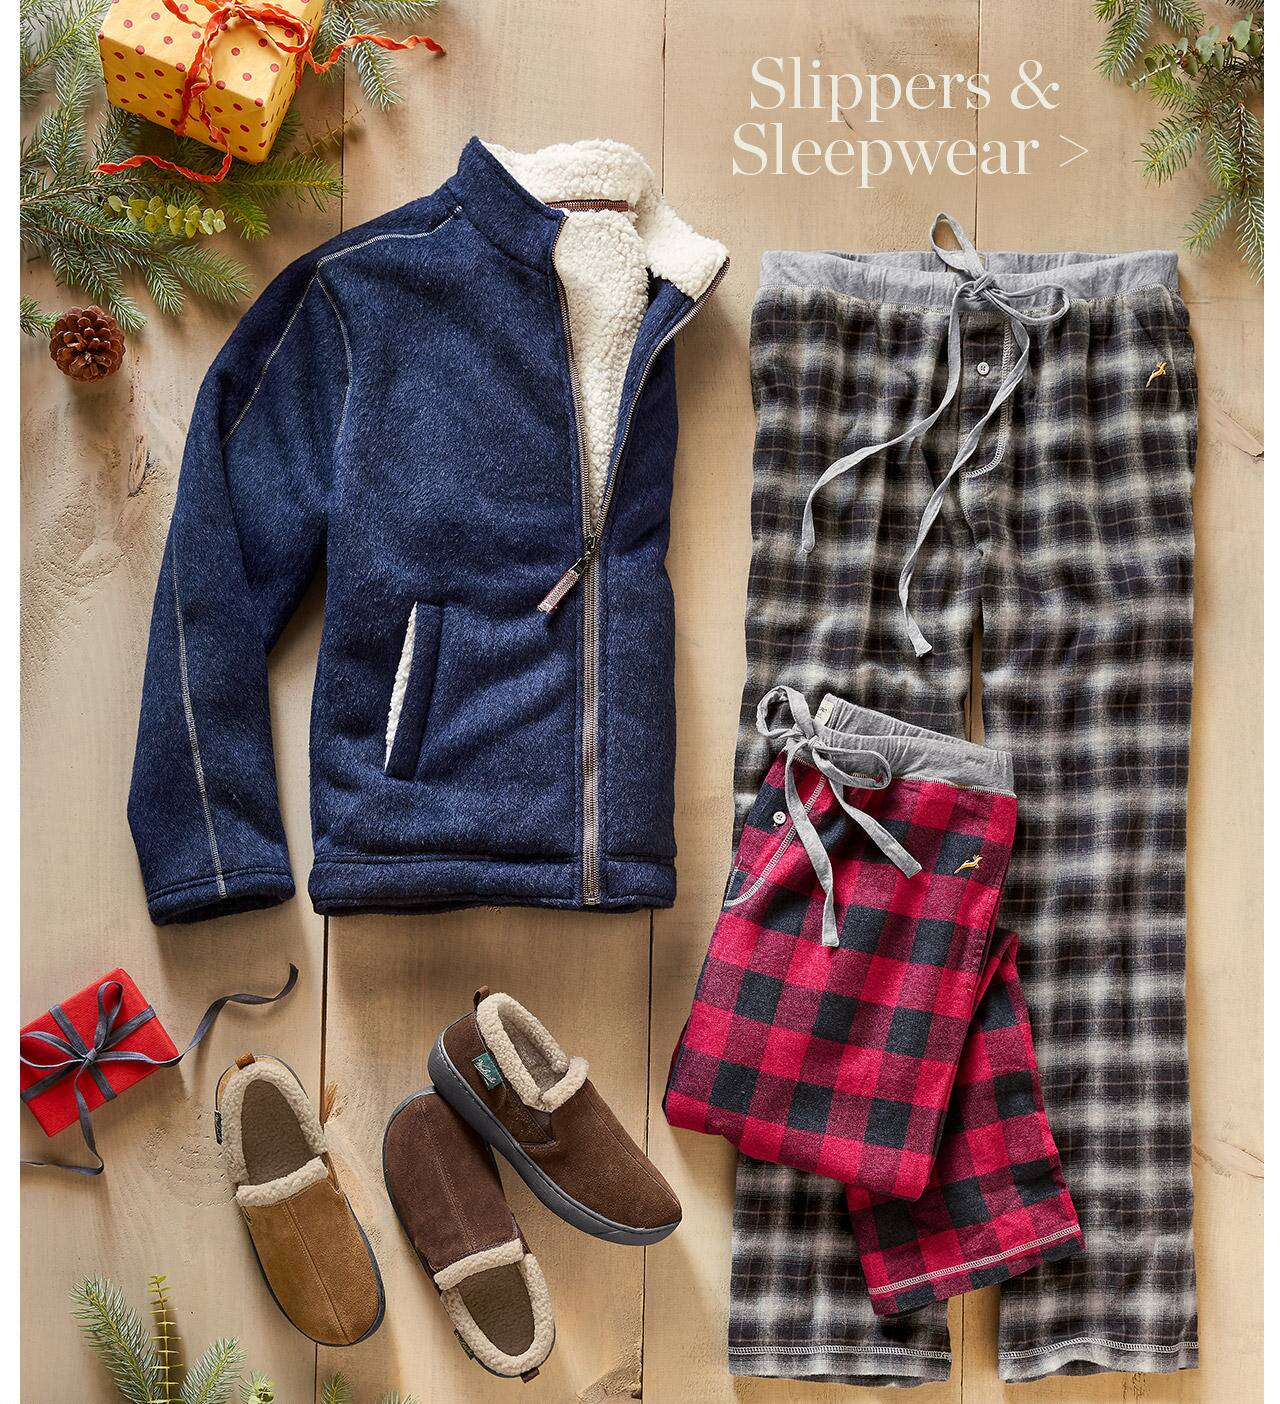 Slippers and Sleepwear for Him